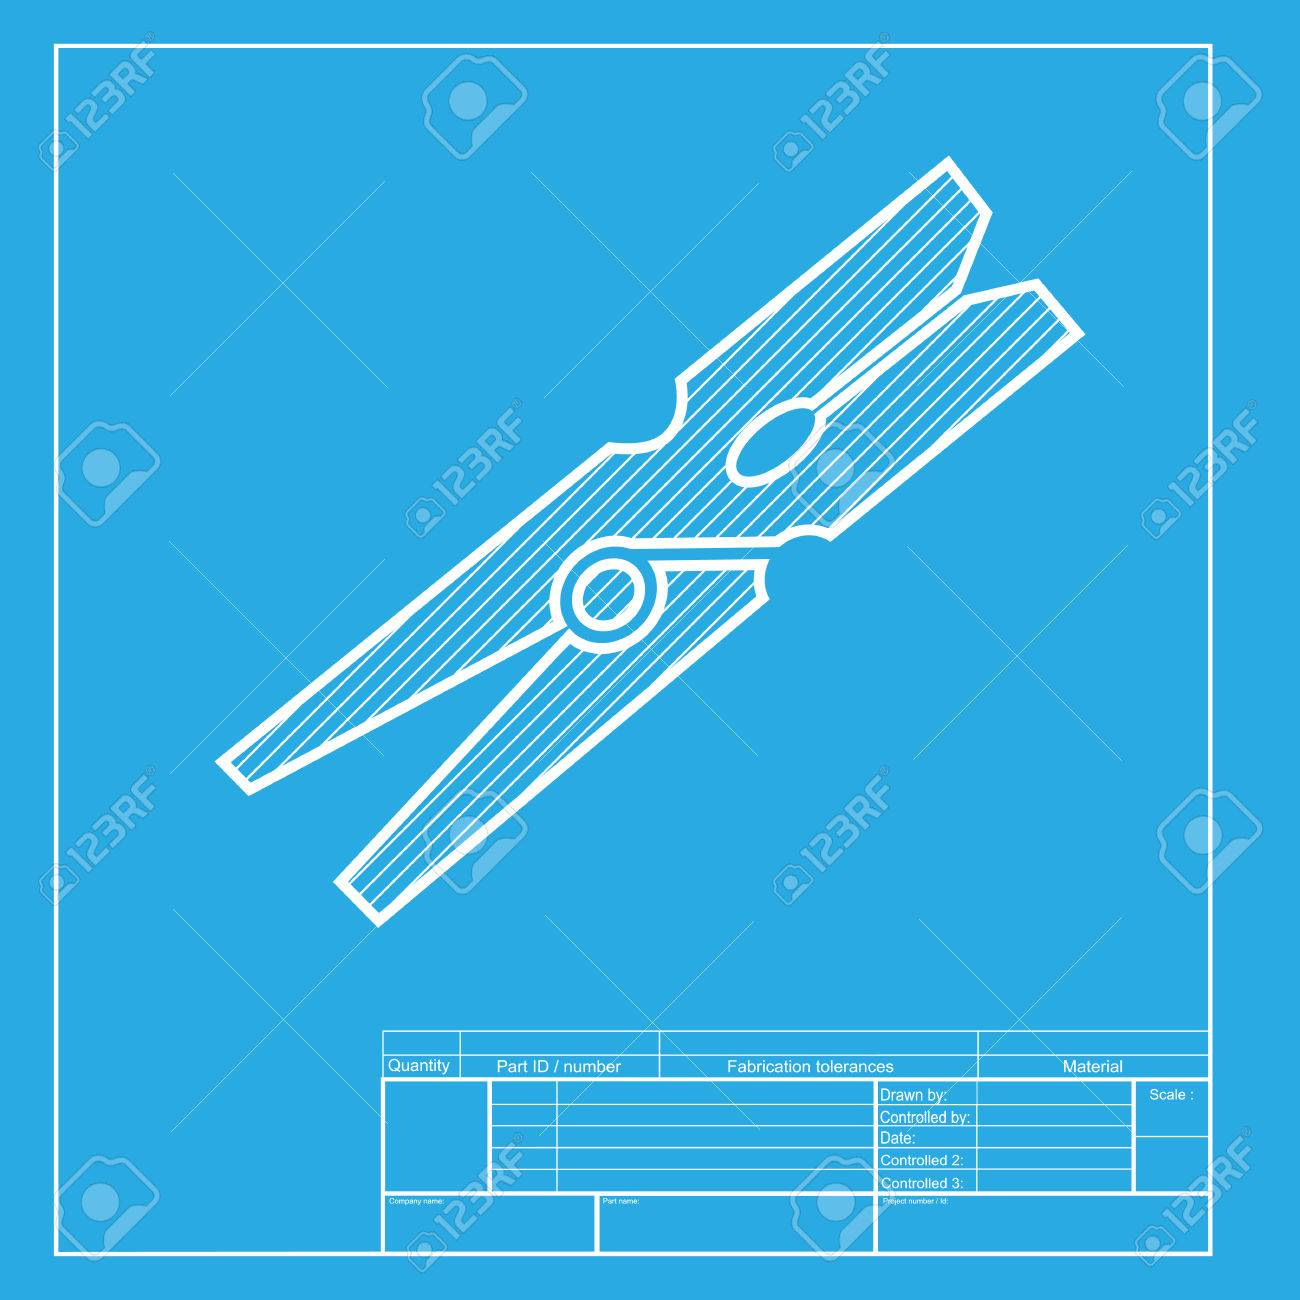 Clothes peg sign white section of icon on blueprint template clothes peg sign white section of icon on blueprint template stock vector 58755657 malvernweather Choice Image